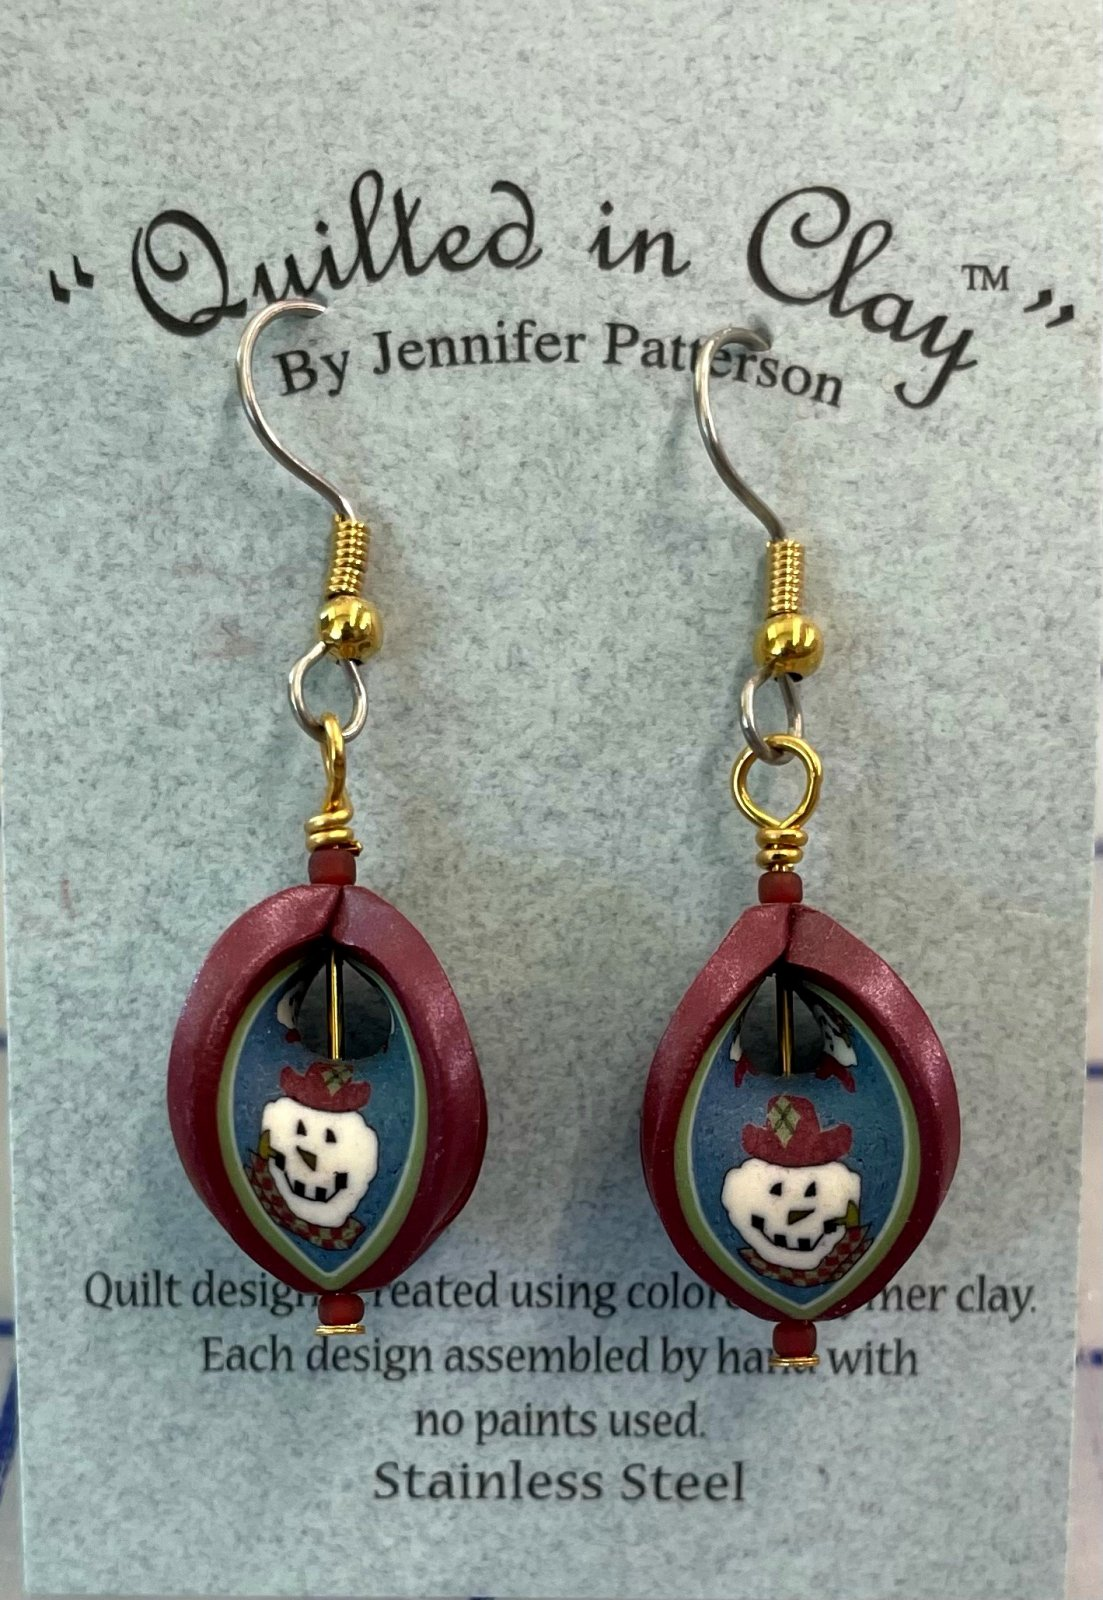 QICSSDRPSMEAR Quilted in Clay Sterling Silver Drop Snowman Earrings